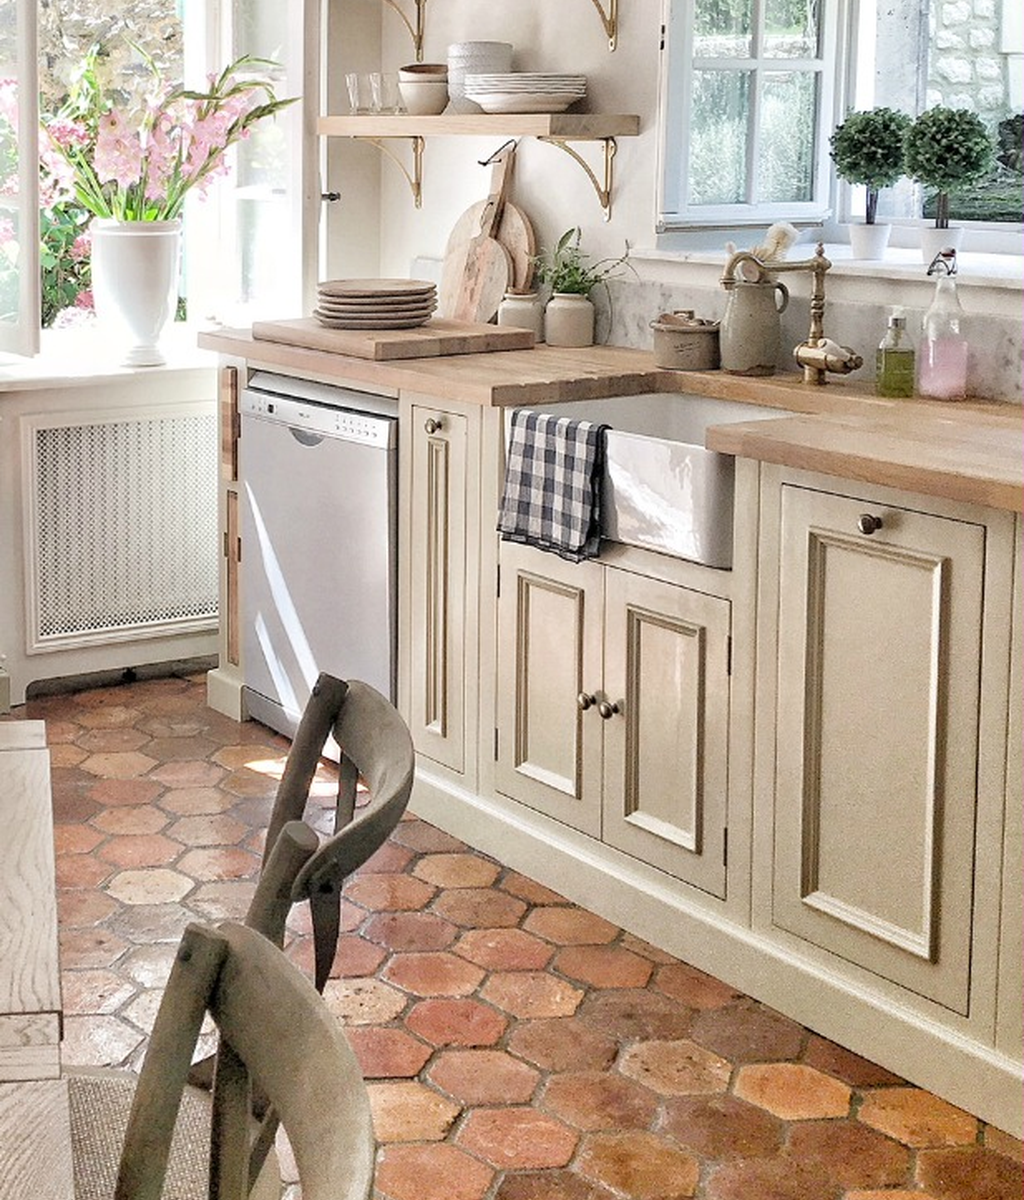 Inspiring Country Kitchen Decor Ideas You Should Copy 08